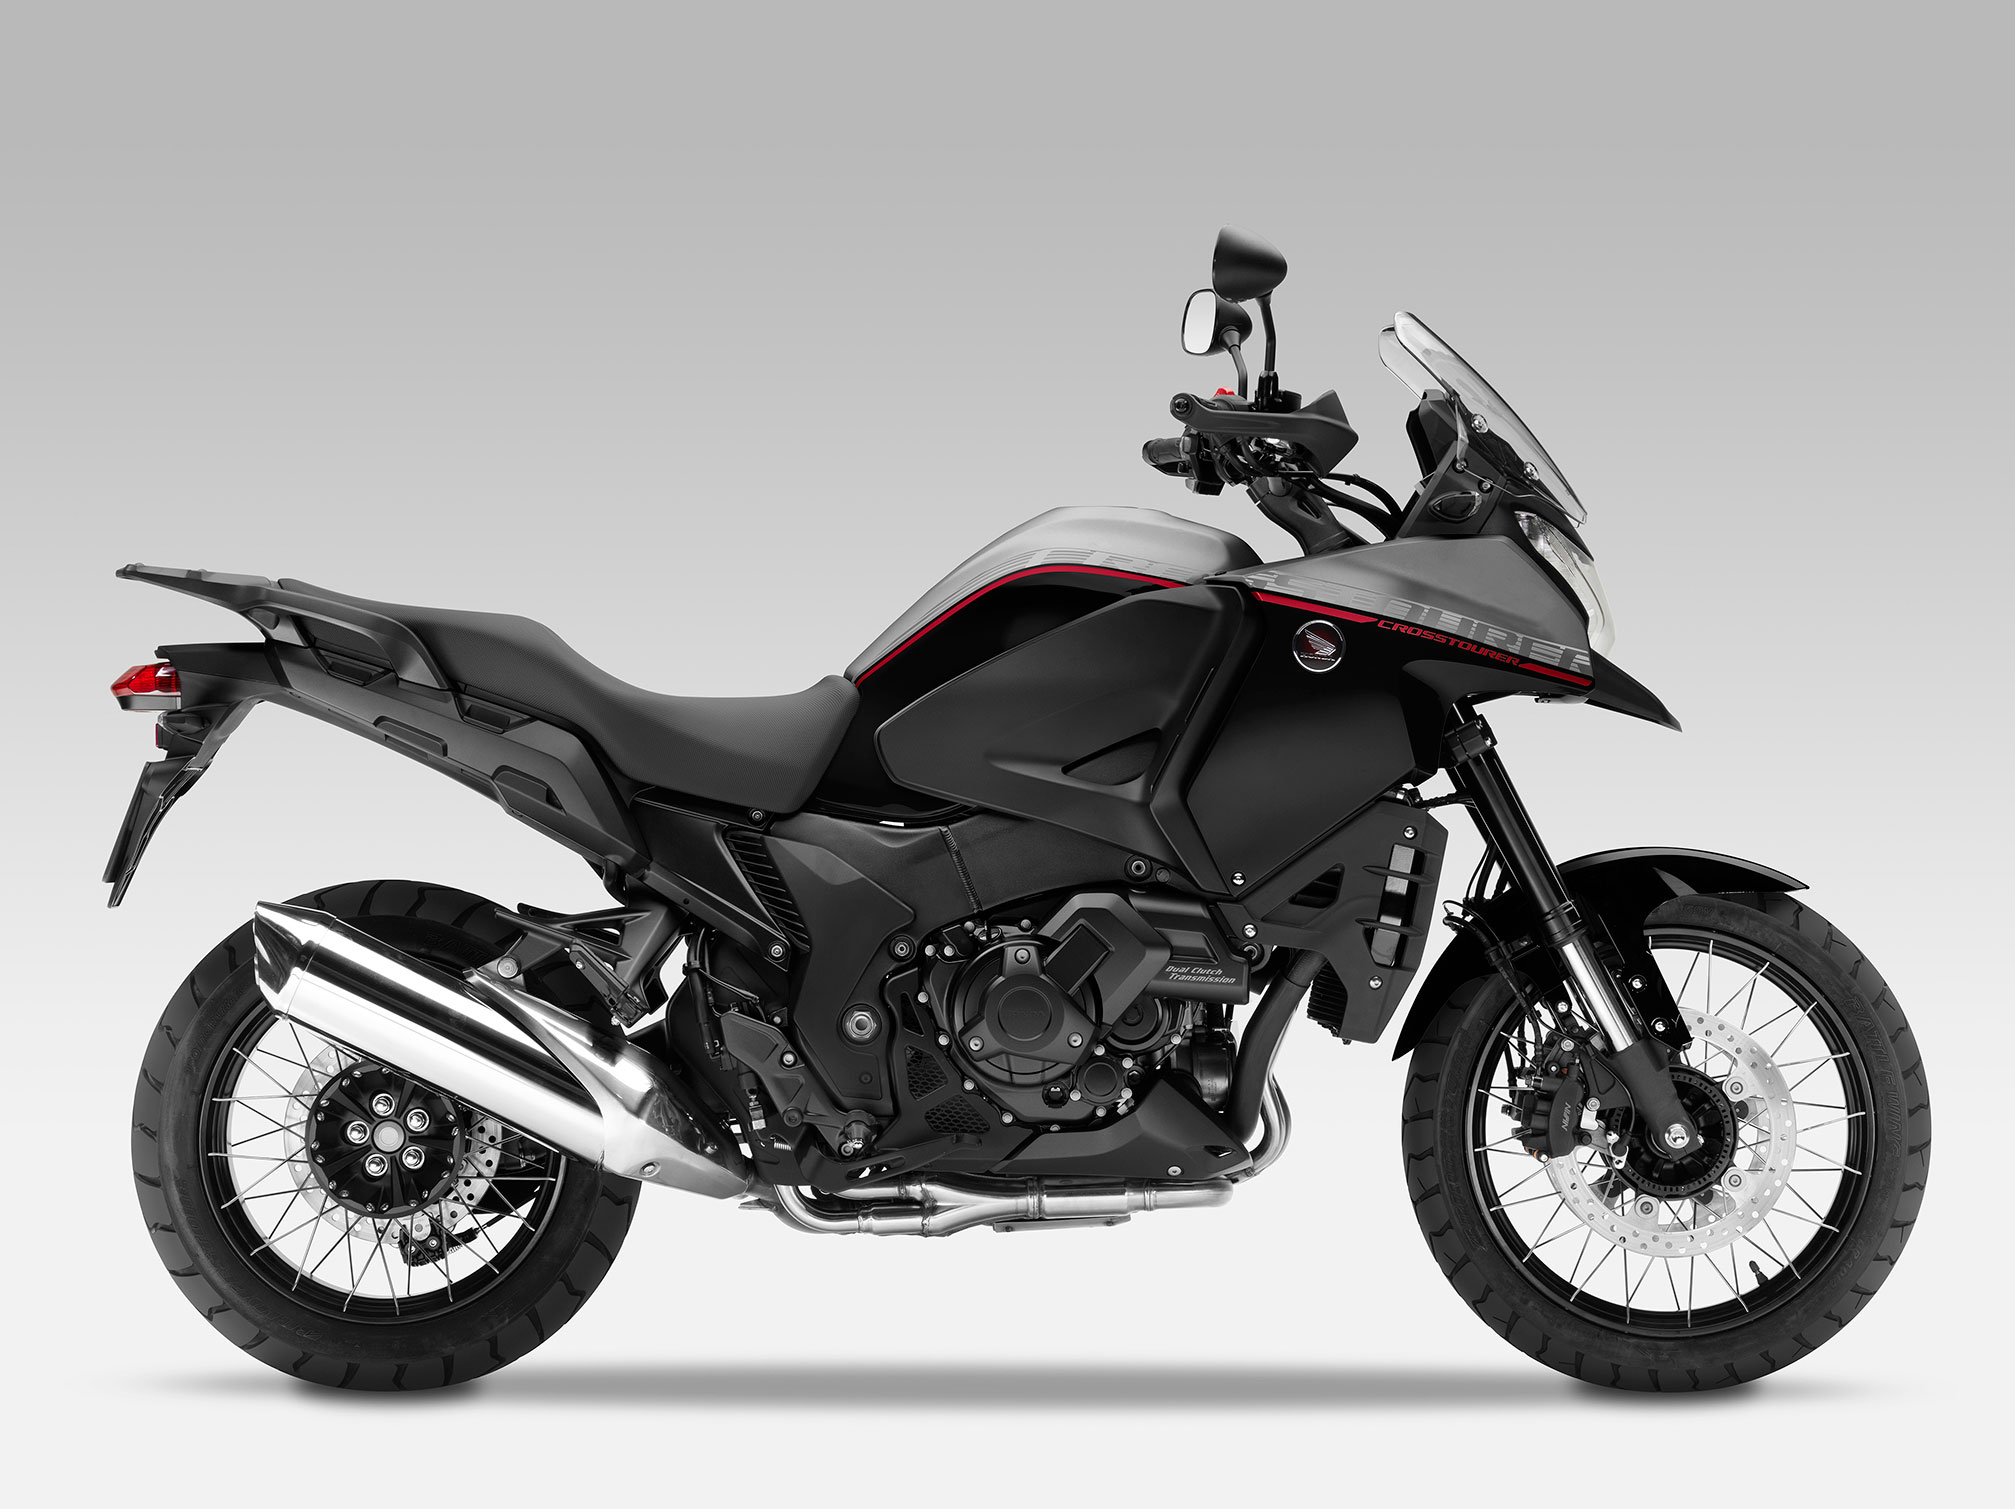 2015 Honda VFR1200X Crosstourer Review